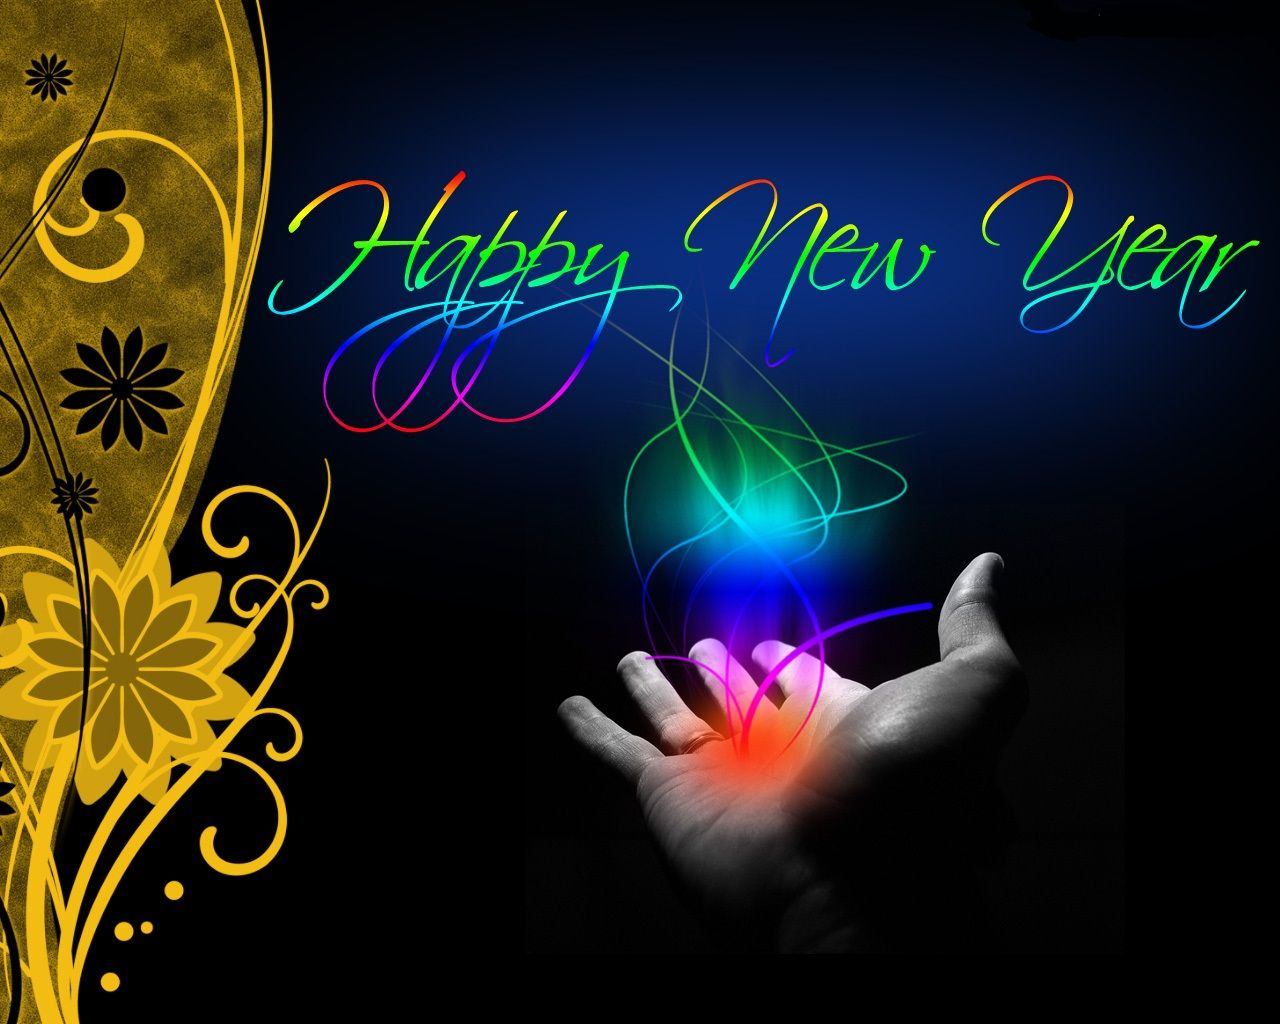 happy new year 2016 wallpapers and images http://www